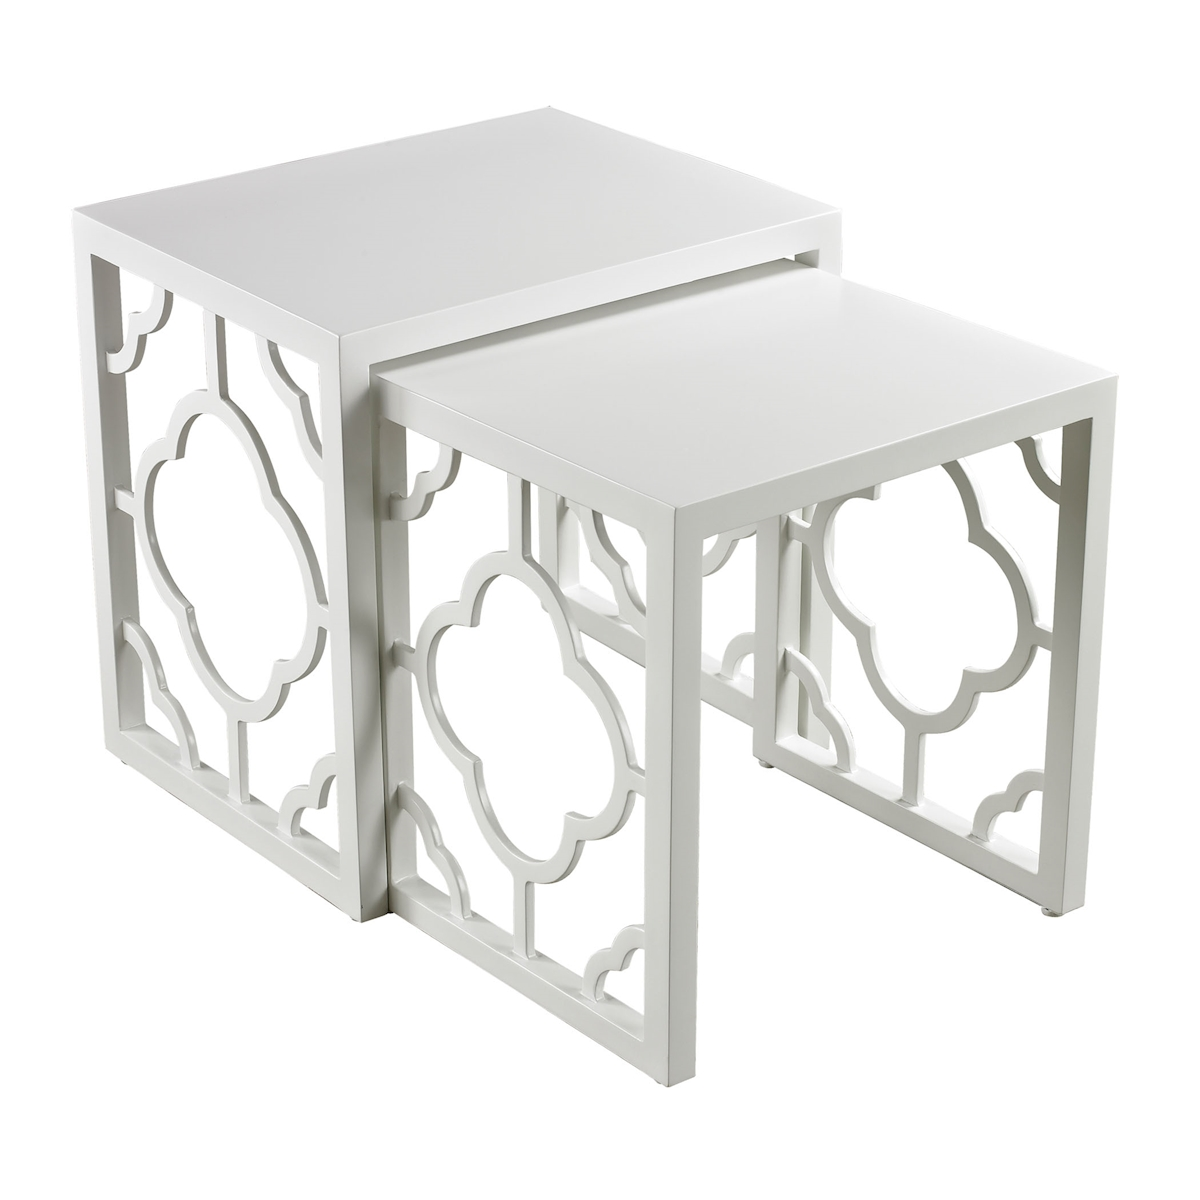 Marrakech Nesting Tables in Gloss White Set of 2 | Elk Home